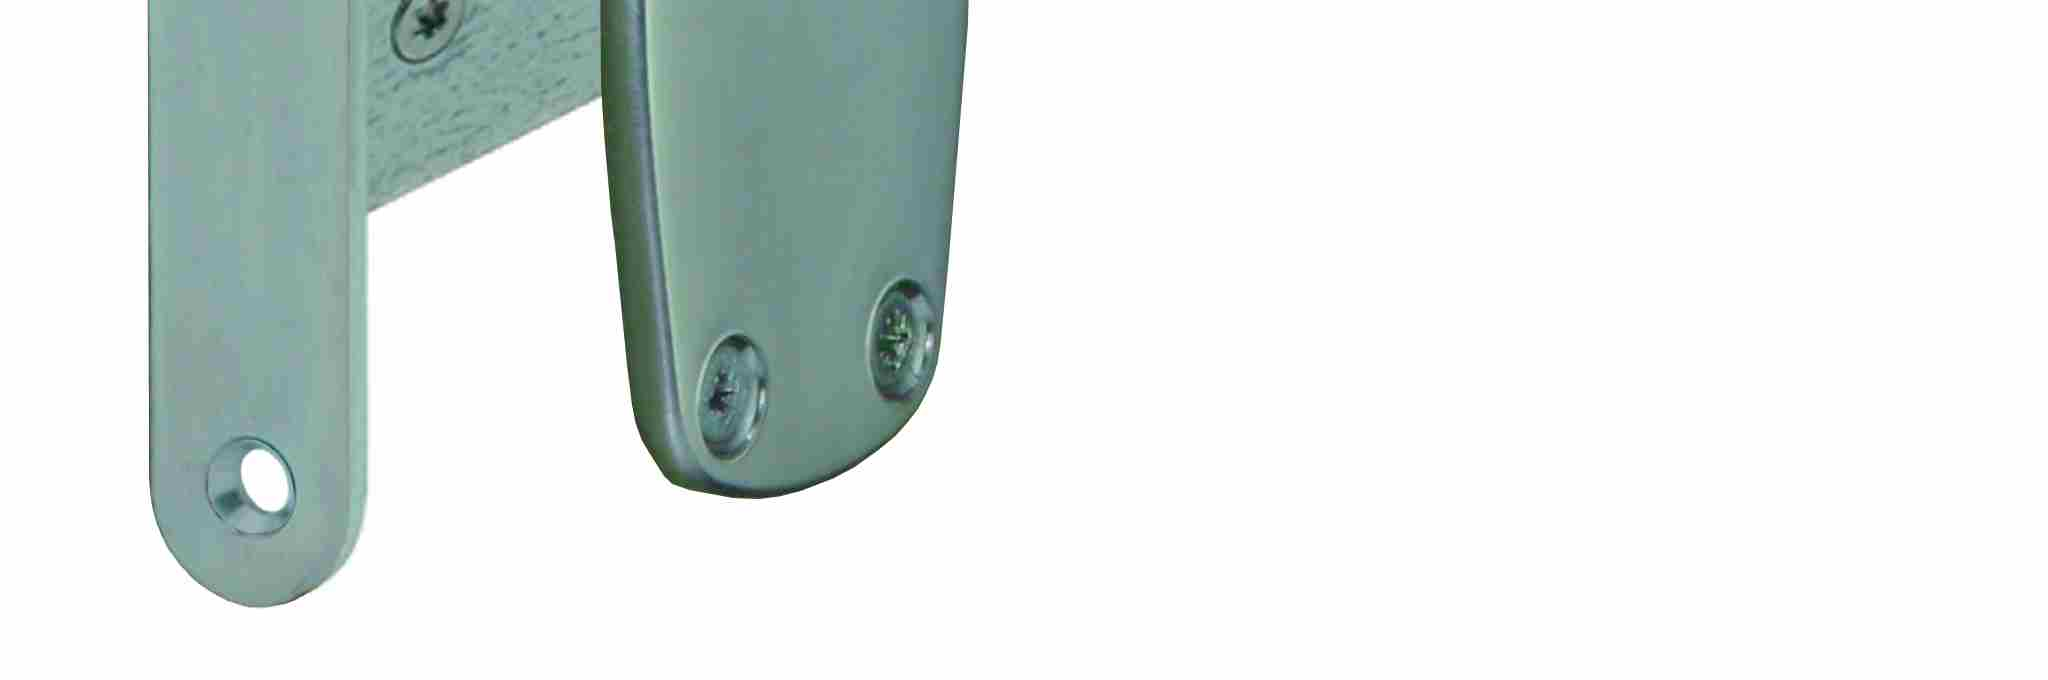 Emergency exit devices / 179 Series Suitable for emergency exit doors where users are expected to be familiar with the operation of the device and a panic situation is unlikely to arise.